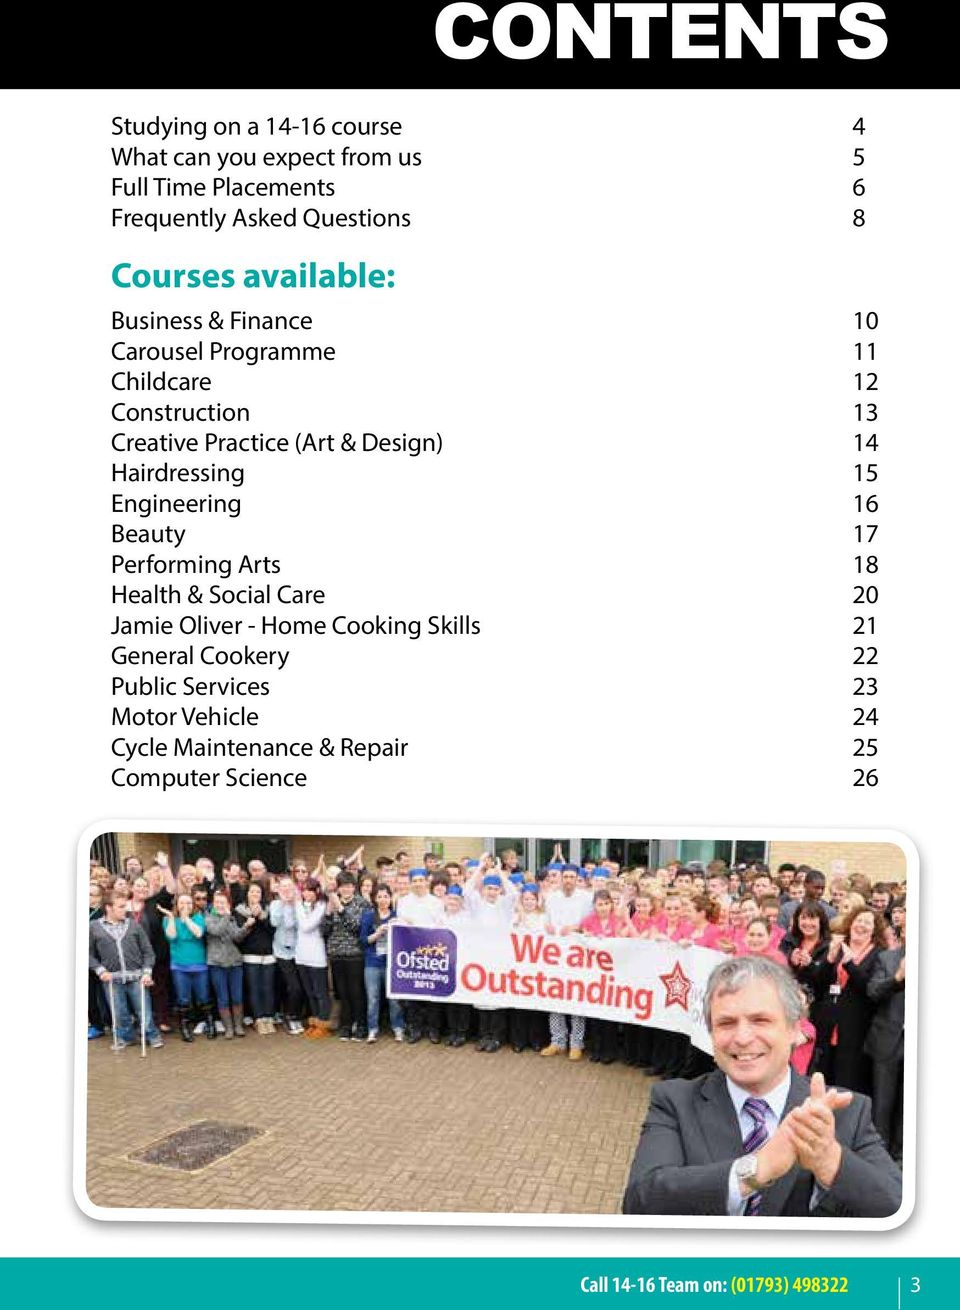 Hairdressing 15 Engineering 16 Beauty 17 Performing Arts 18 Health & Social Care 20 Jamie Oliver - Home Cooking Skills 21